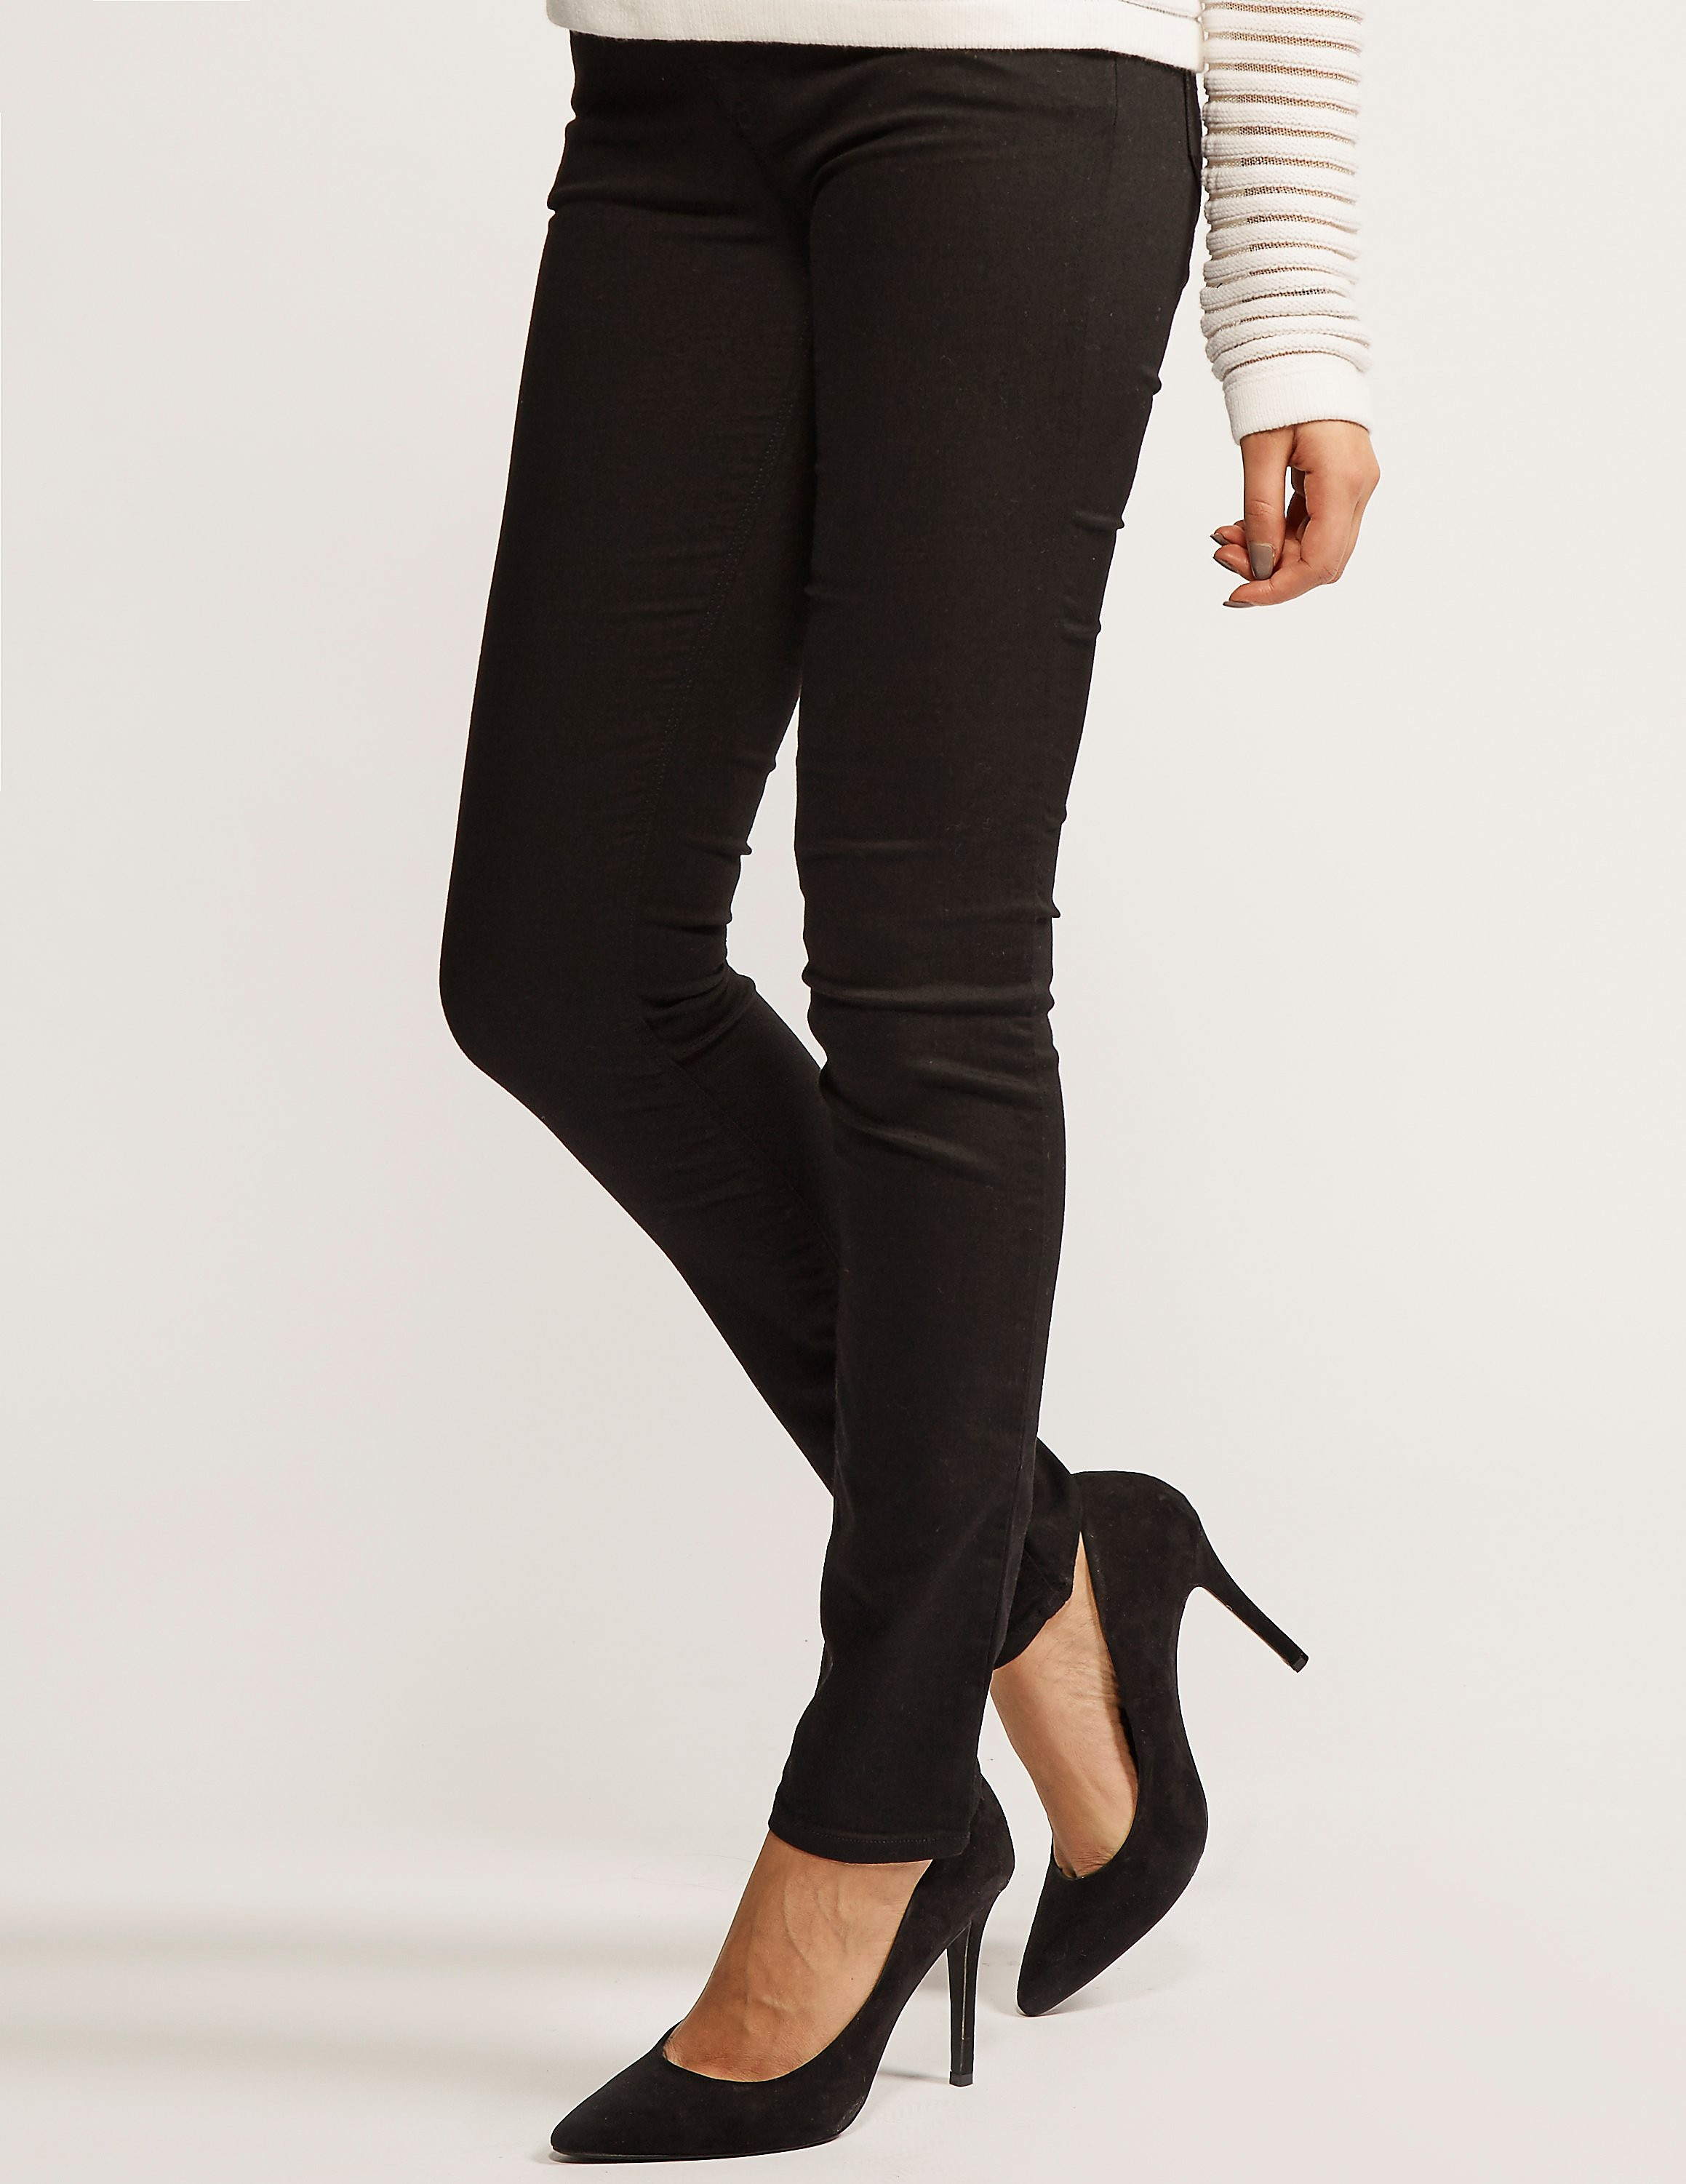 Armani Jeans Stretchy Skinny Fit Jeans